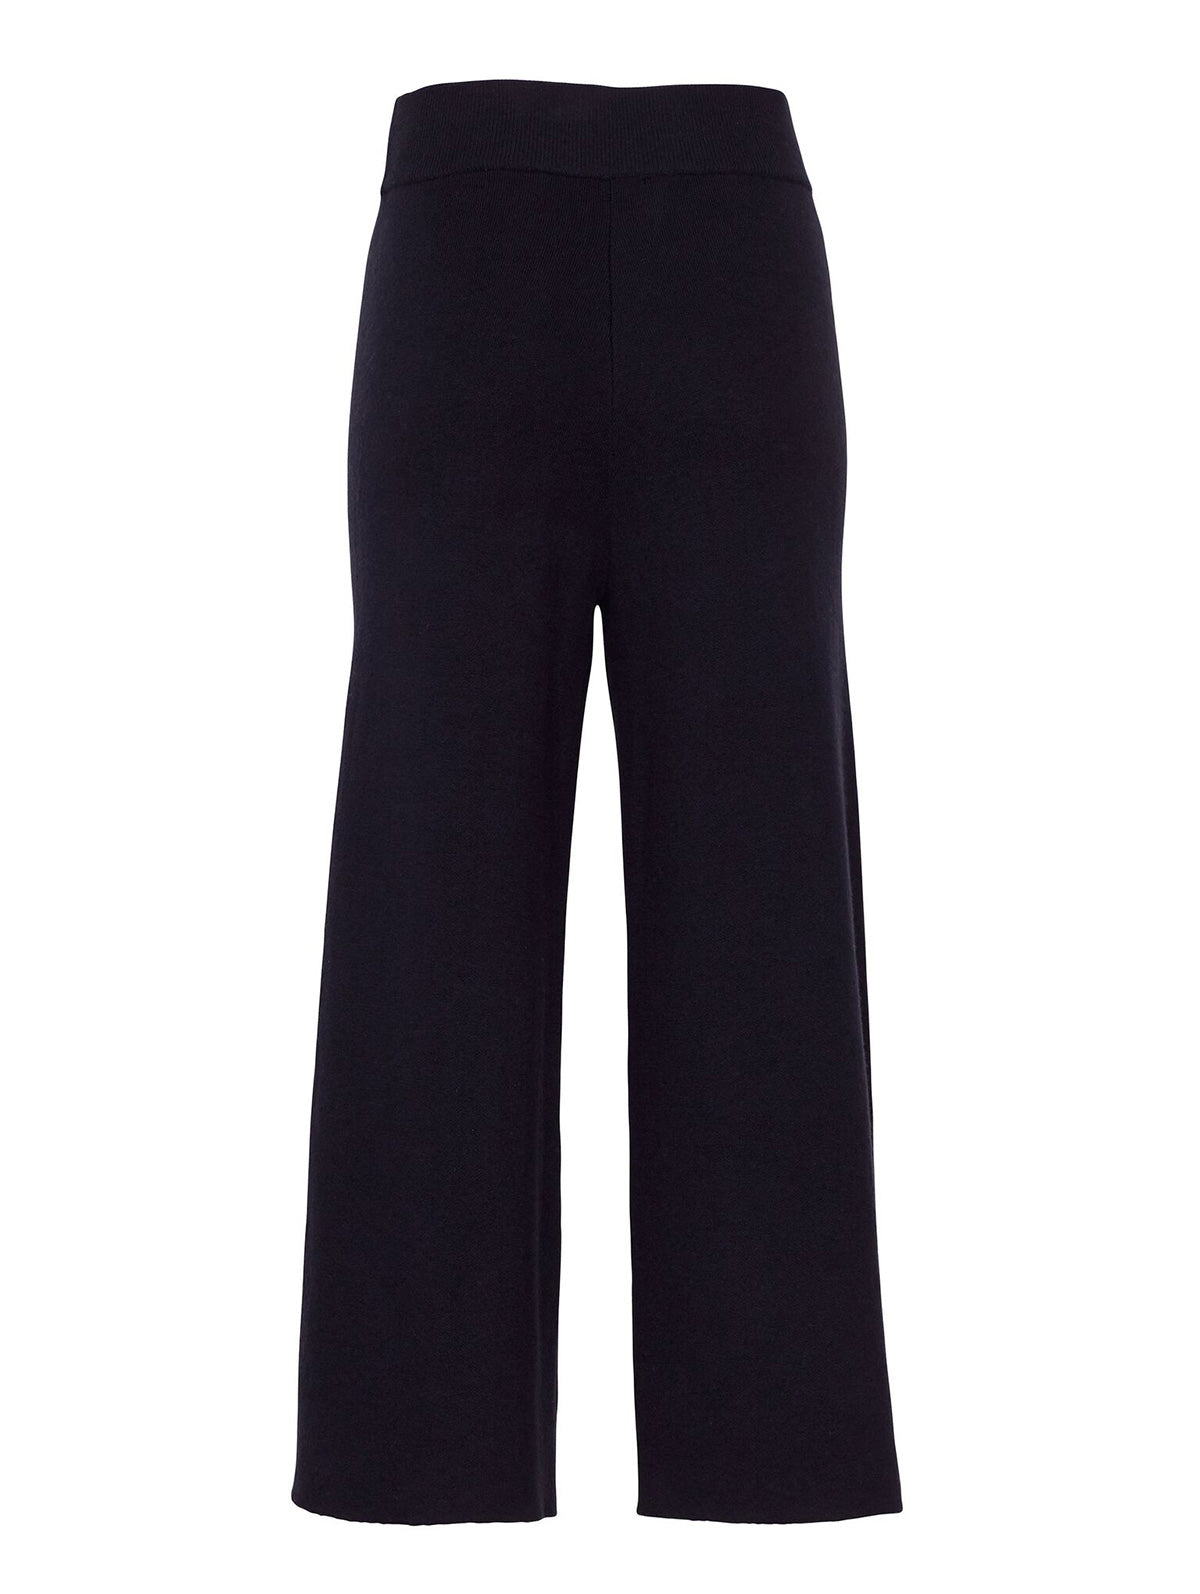 COTTON CASHMERE PANT, NAVY